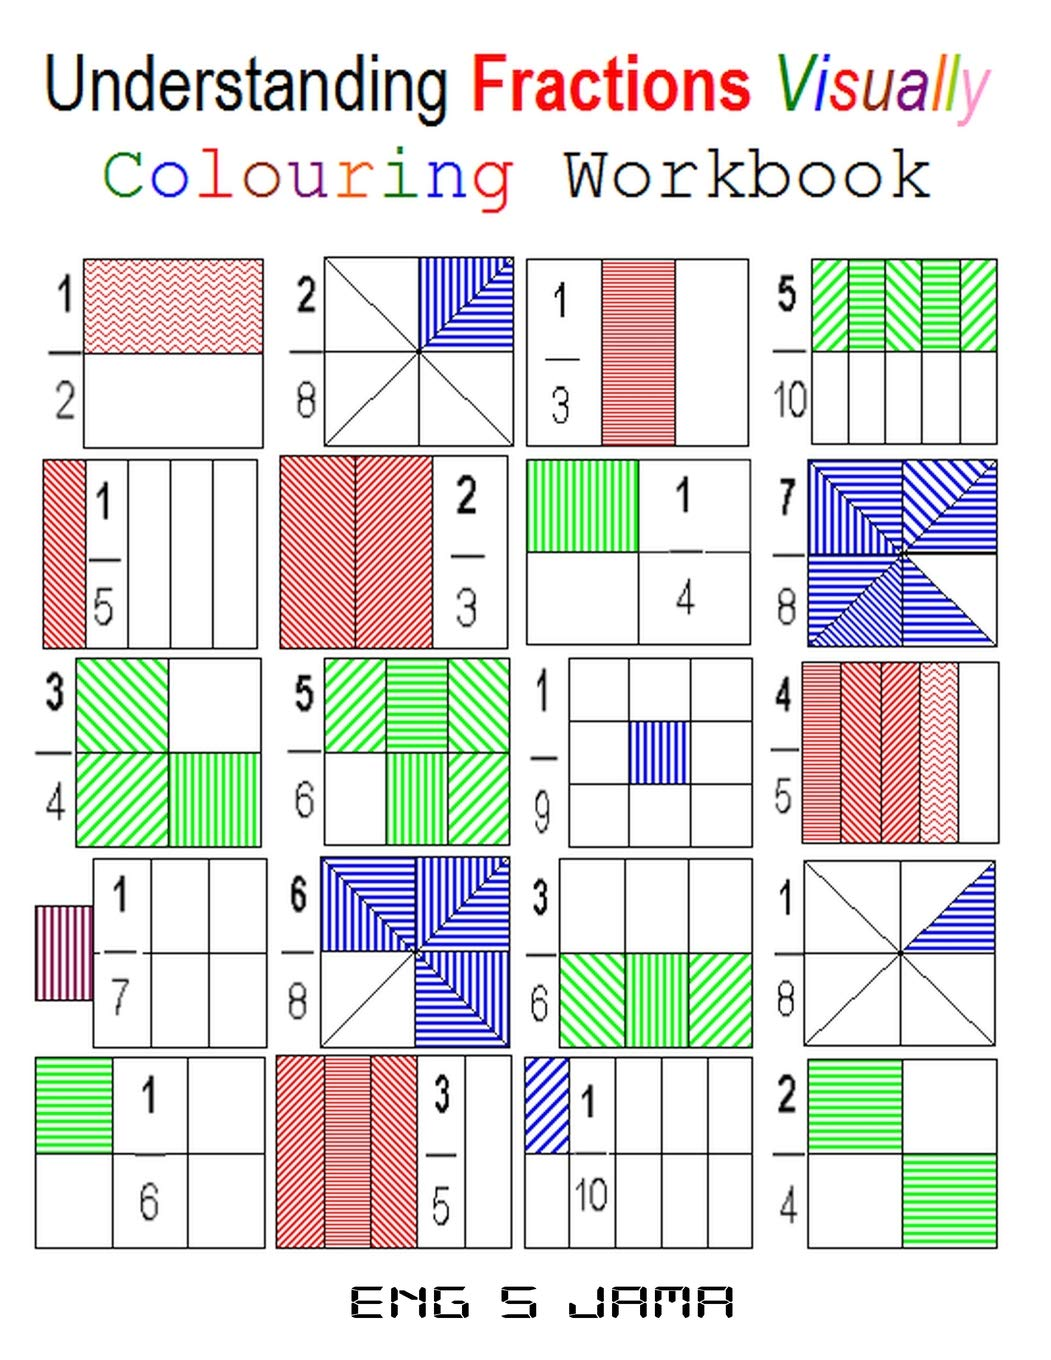 Understanding Fractions Visually  Colouring Workbook